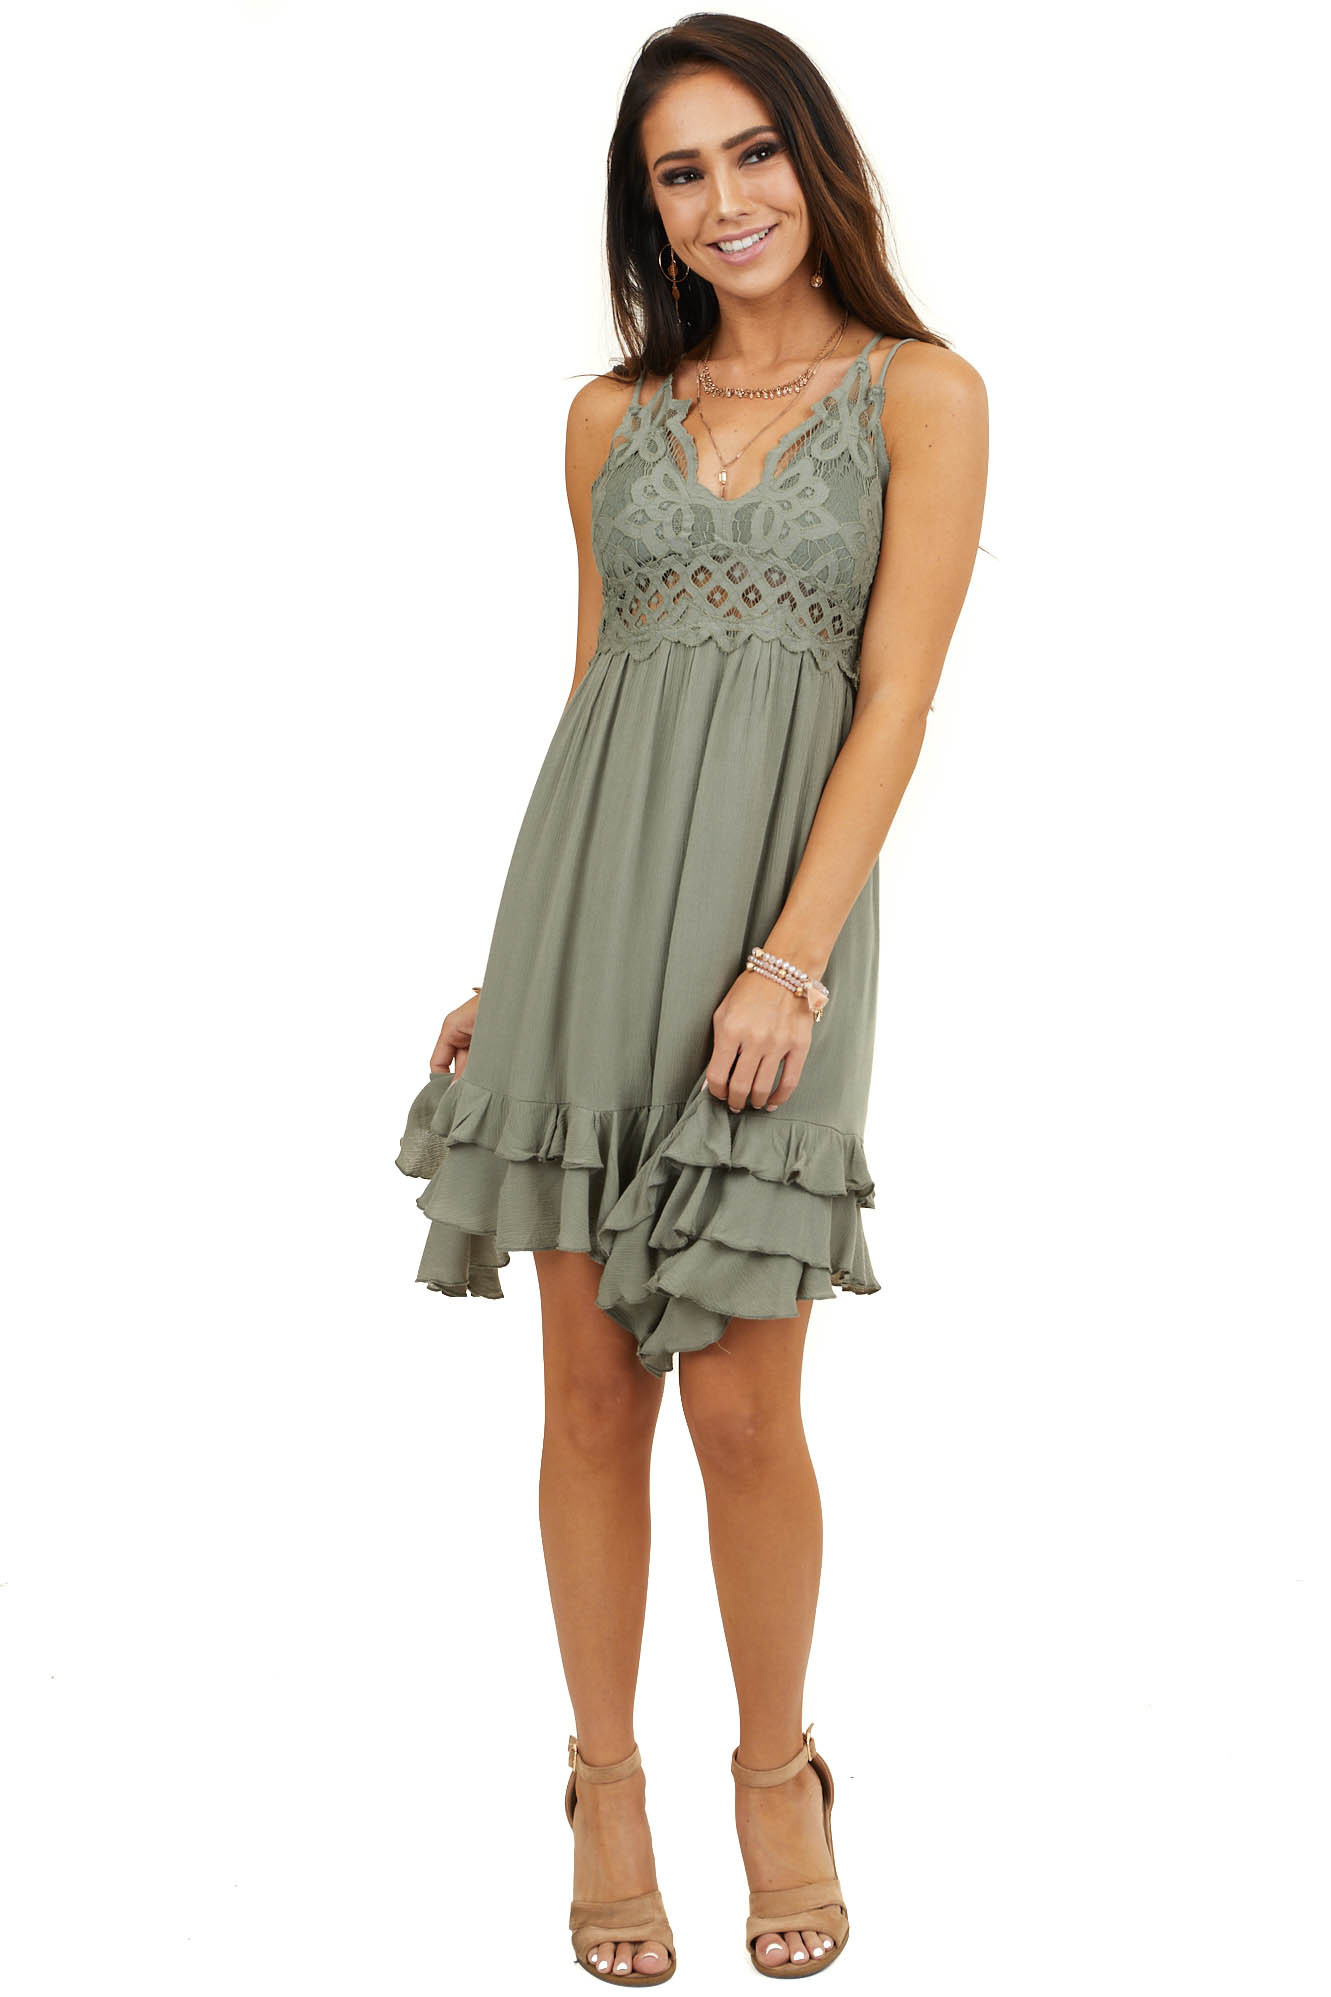 Olive Double Spaghetti Strap Mini Dress with Lace Detail